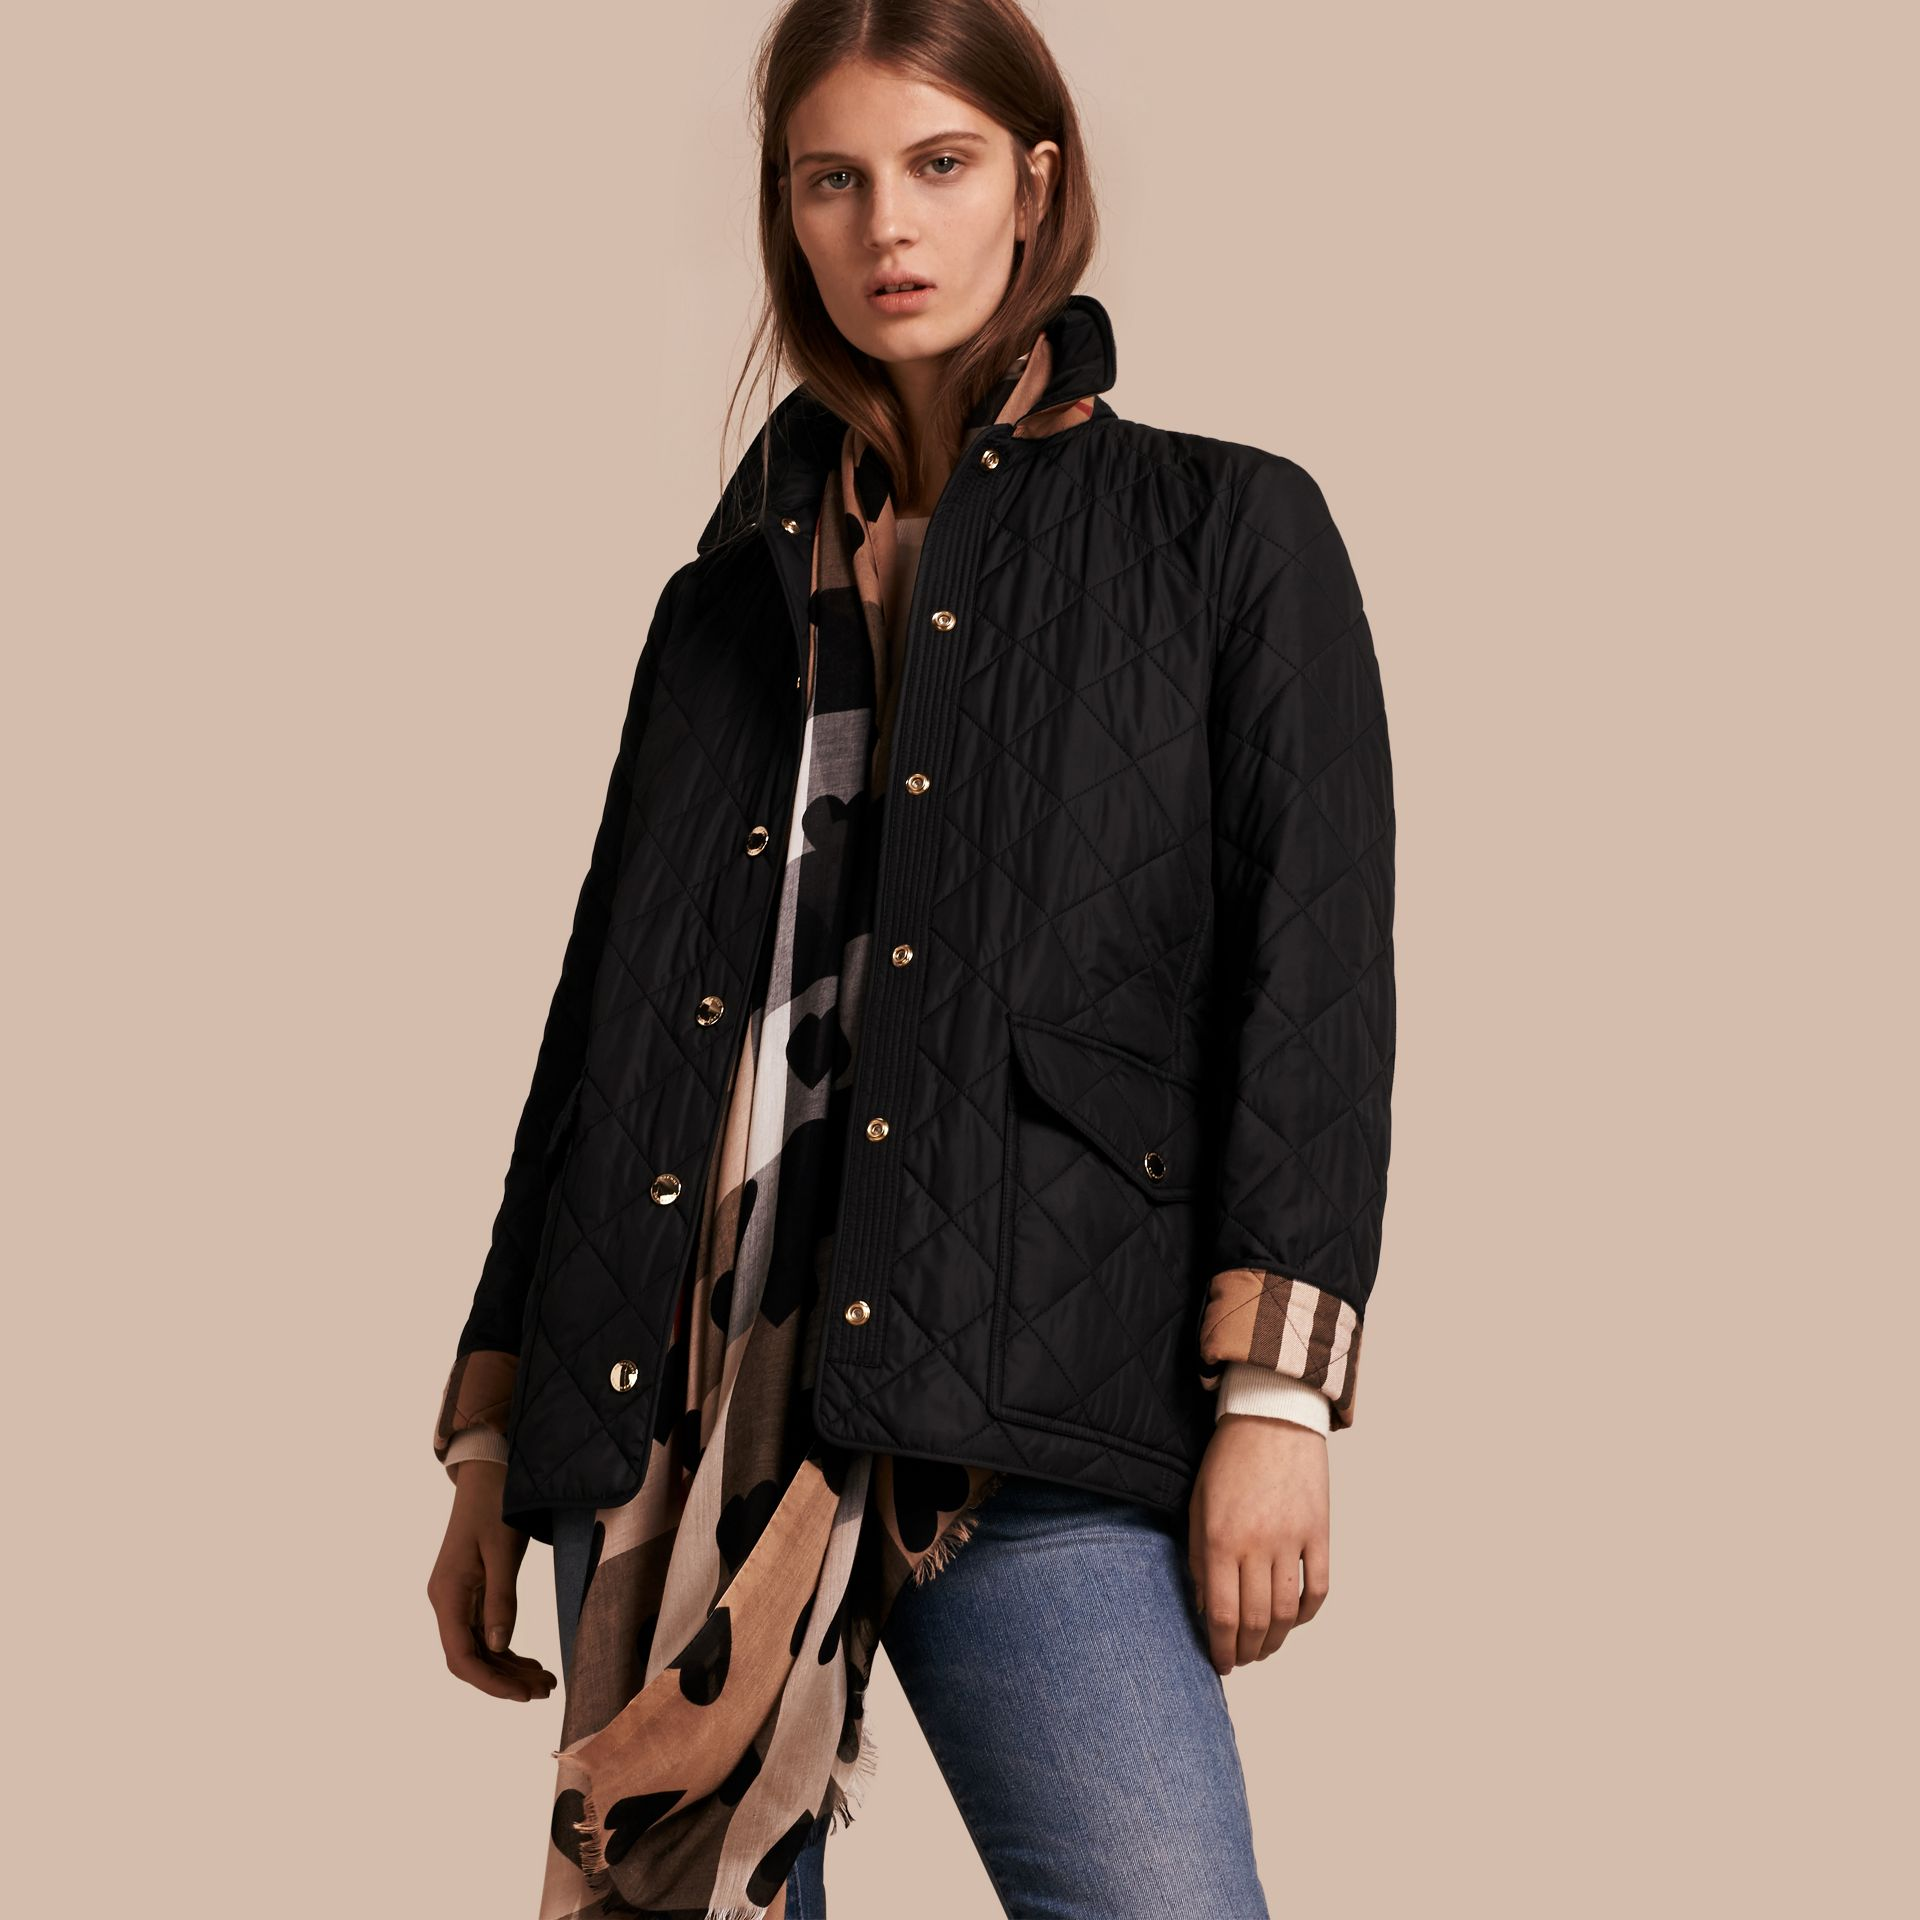 Black Check Lined Diamond Quilted Jacket Black - gallery image 1